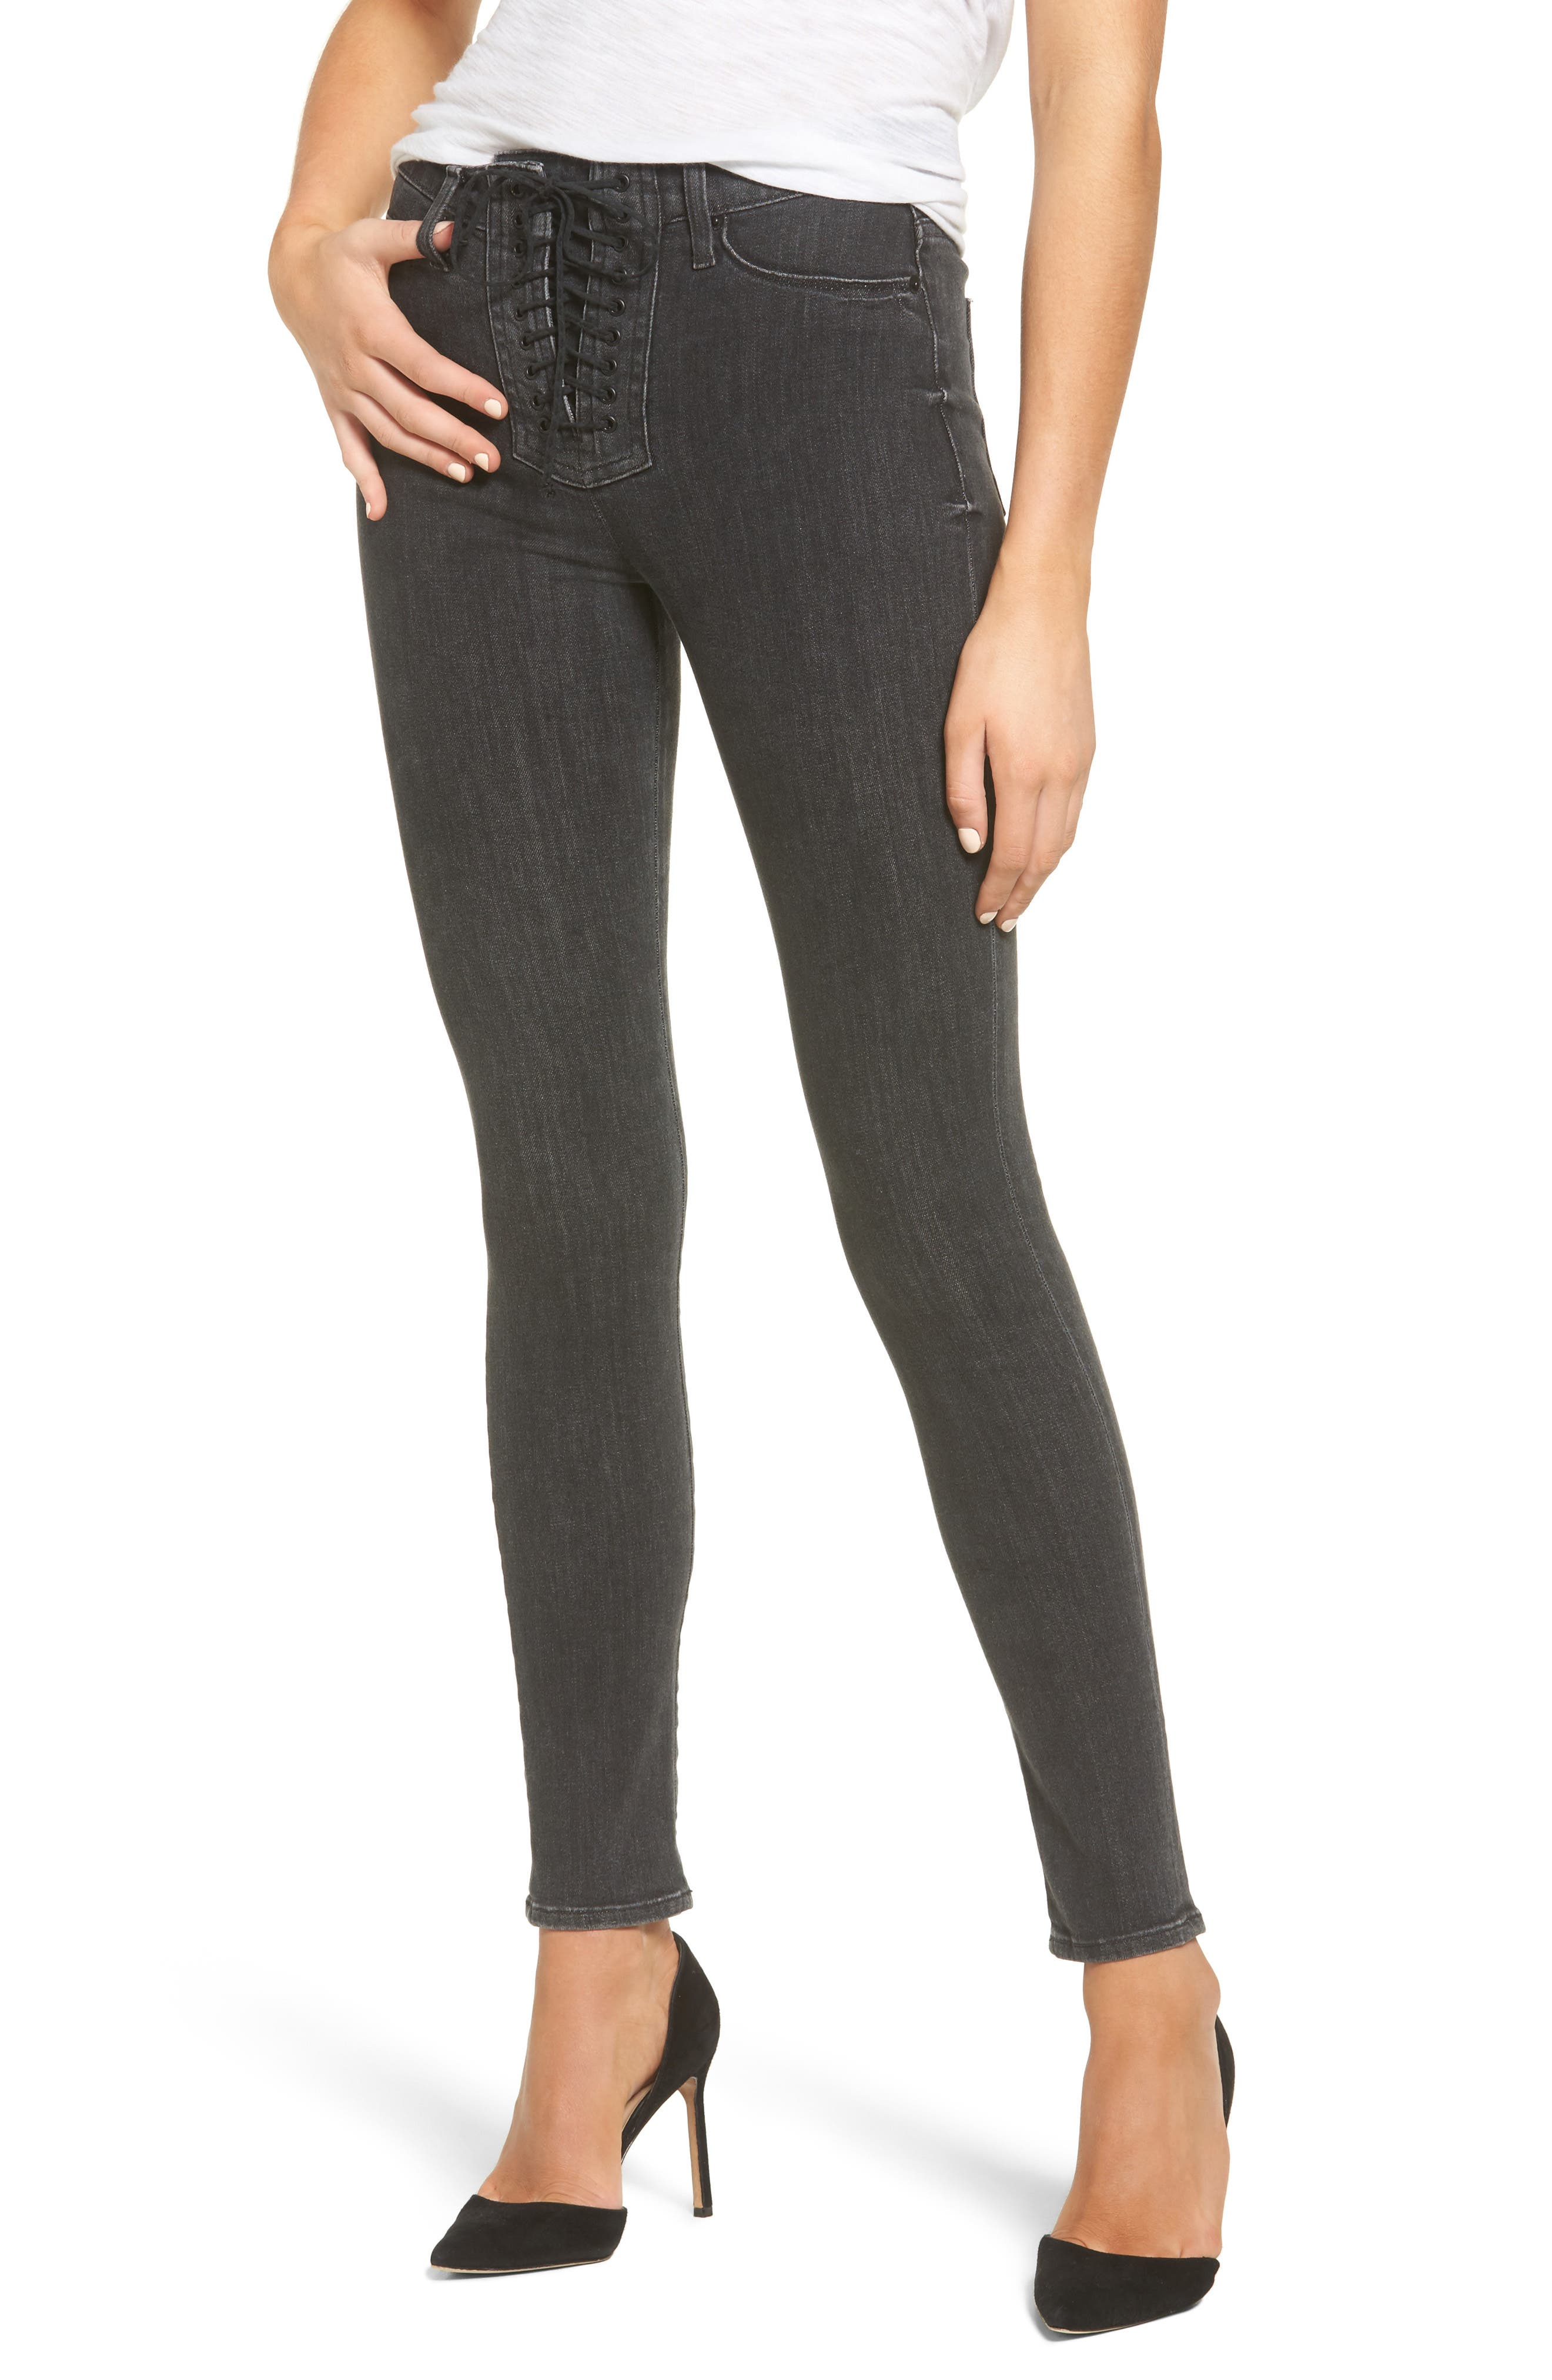 Bullocks High Waist Lace-Up Skinny Jeans,                         Main,                         color,